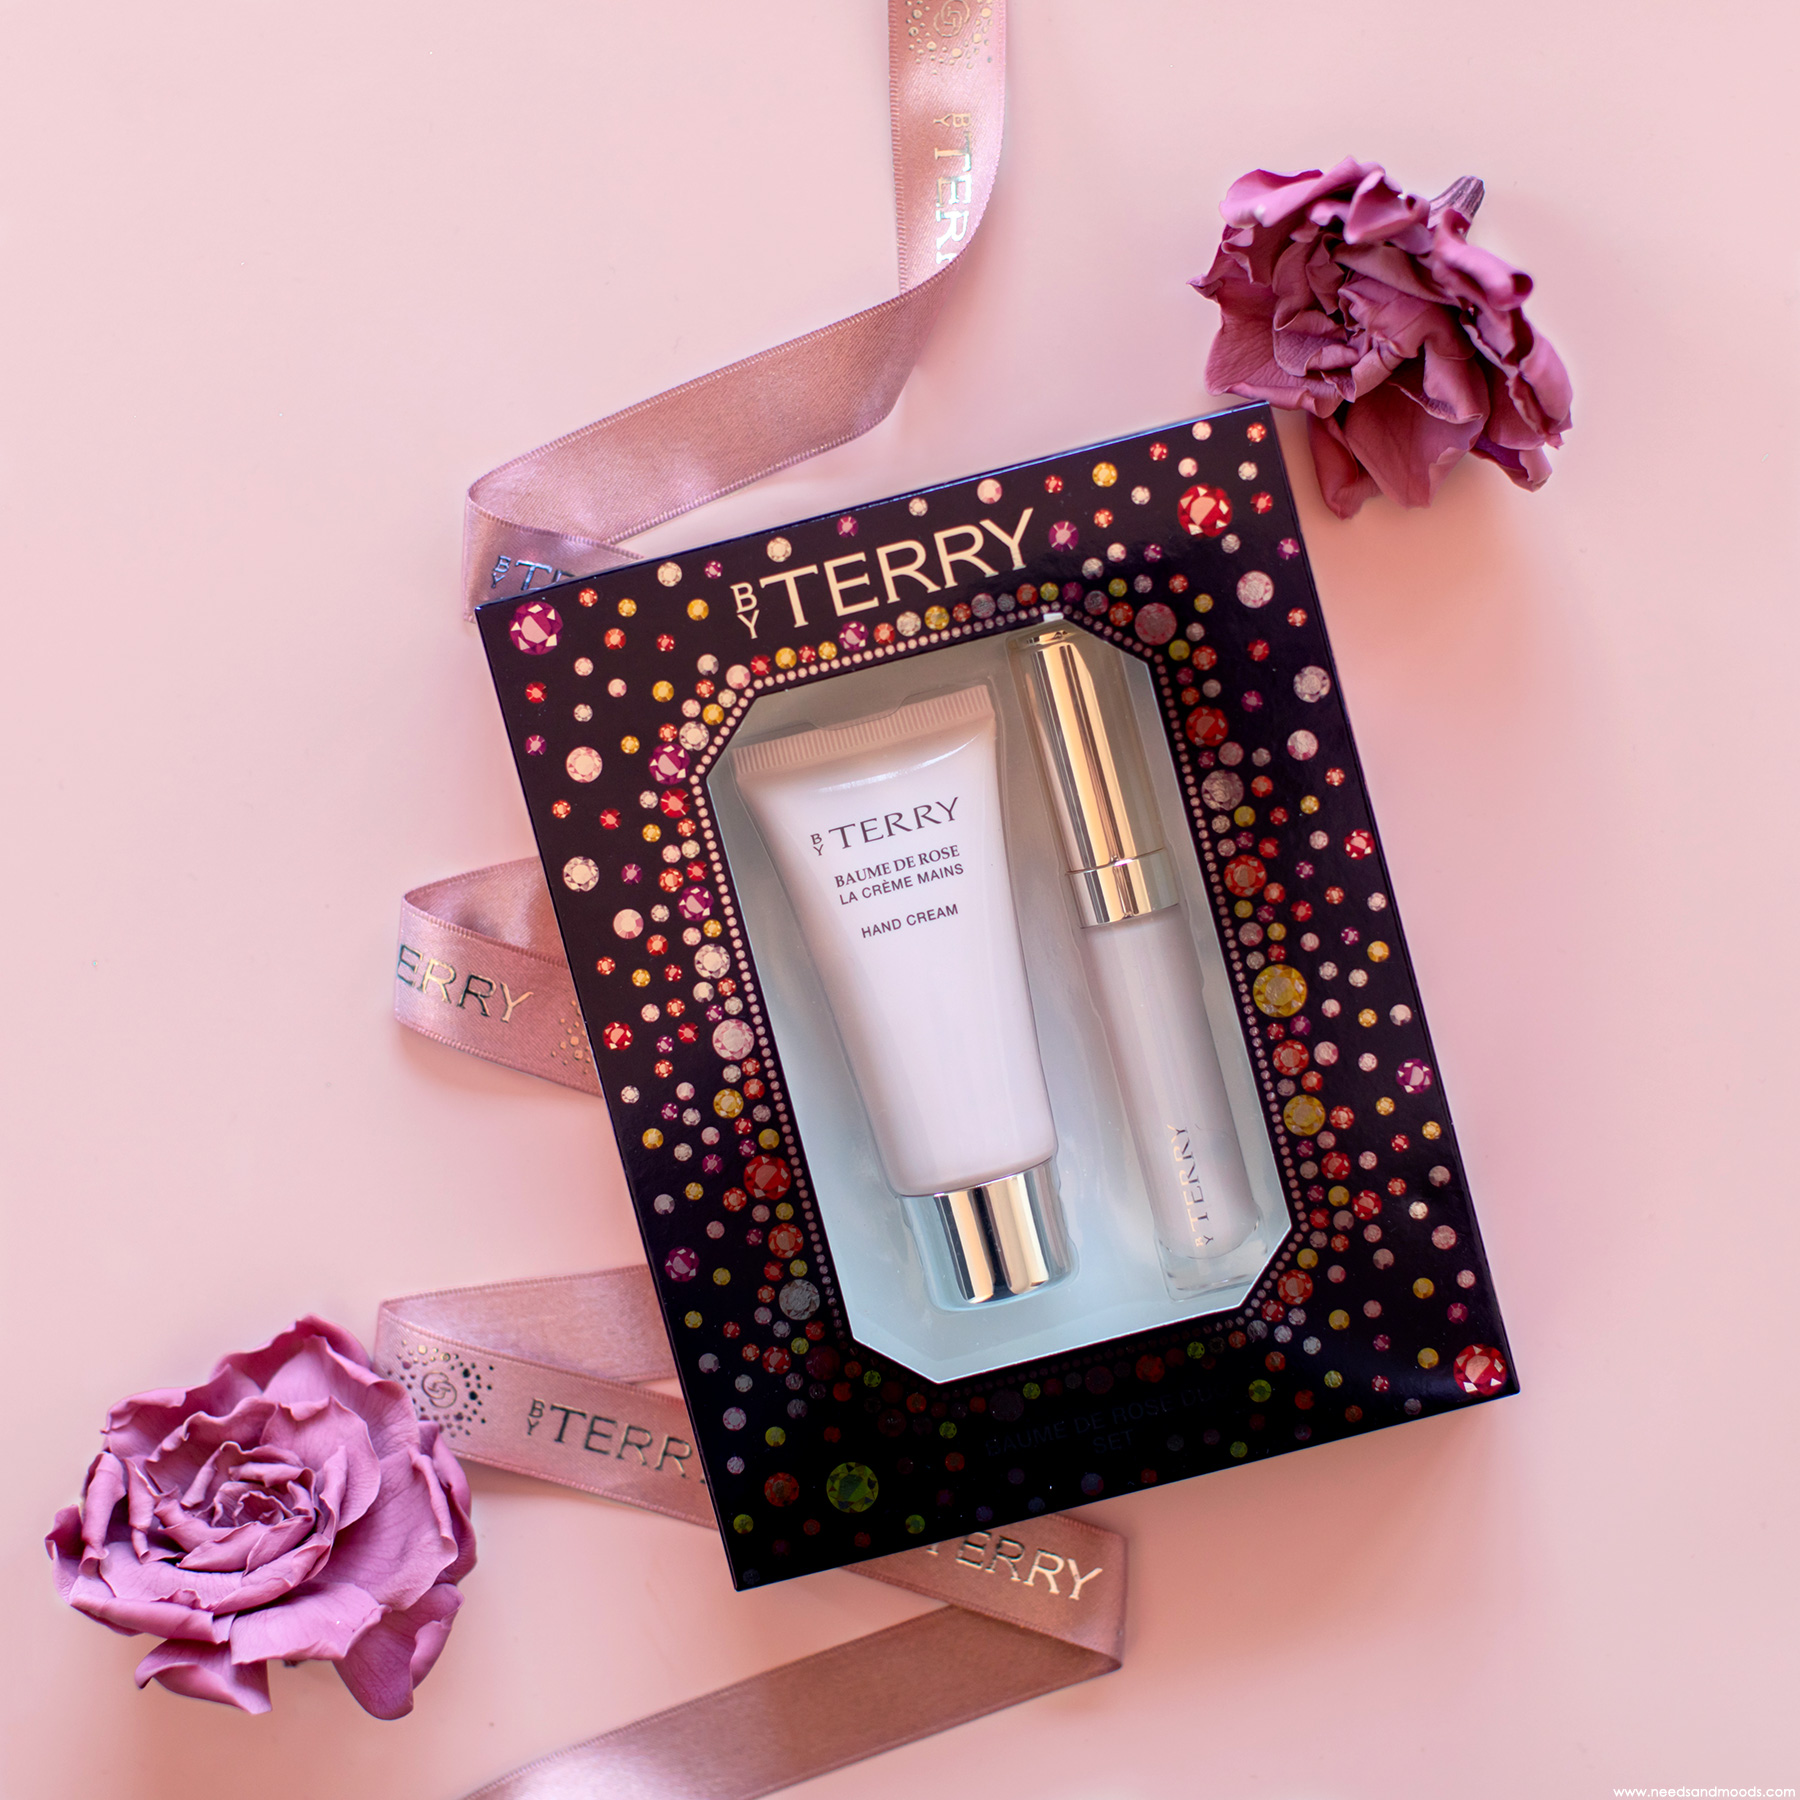 by terry baume rose duo set gem glow